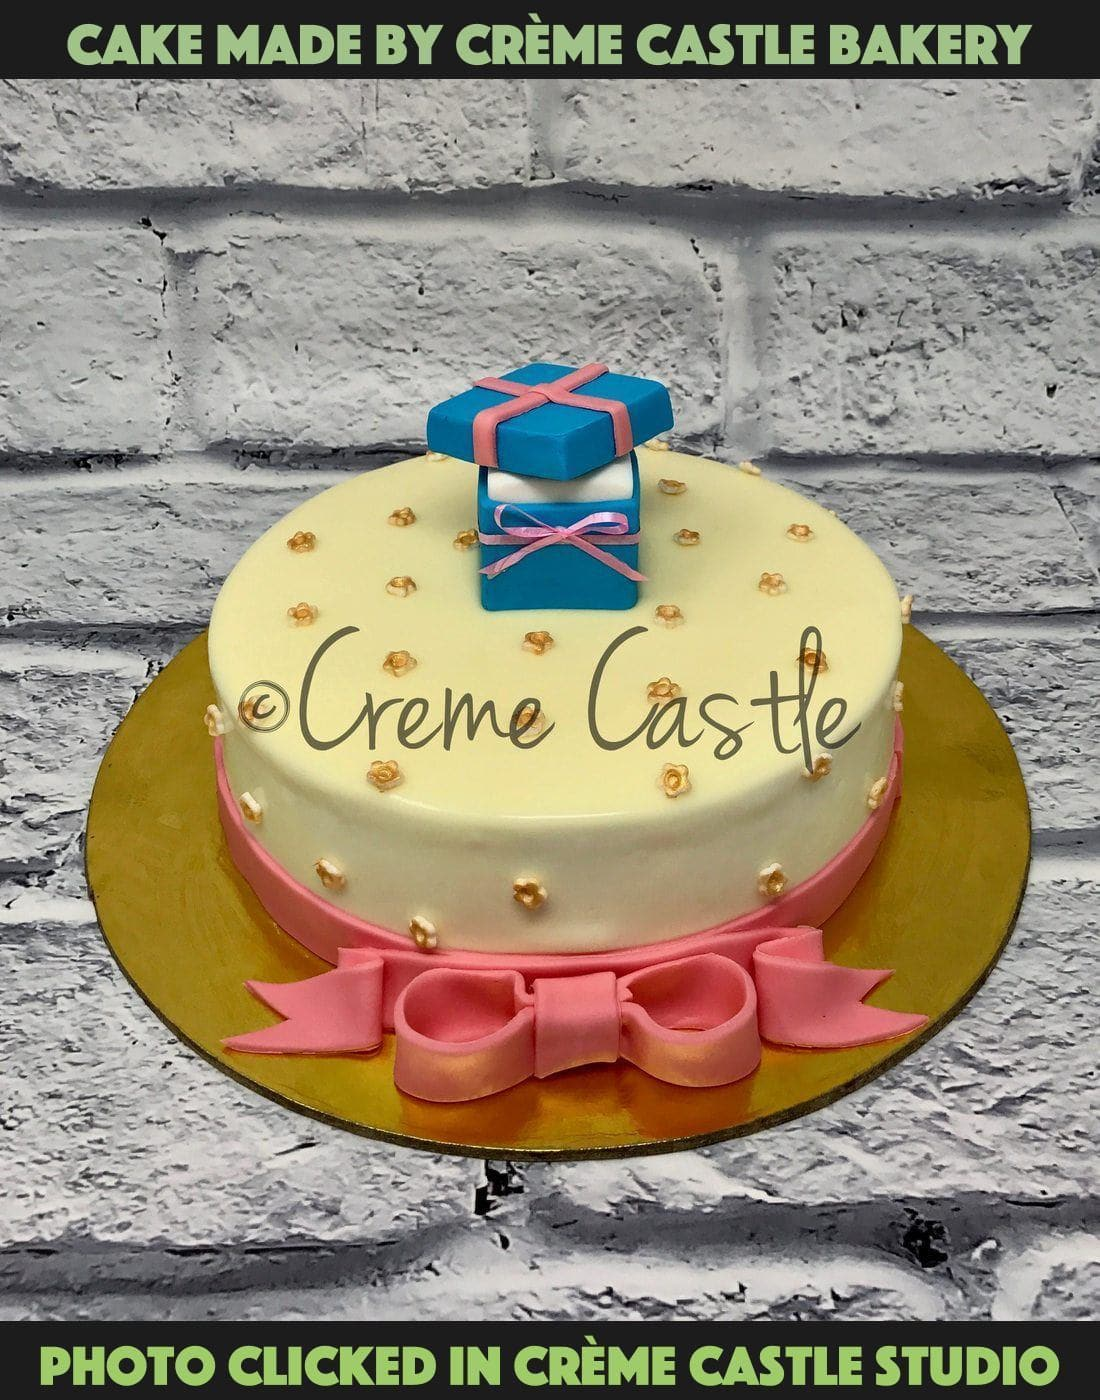 Proposal - cremecastle